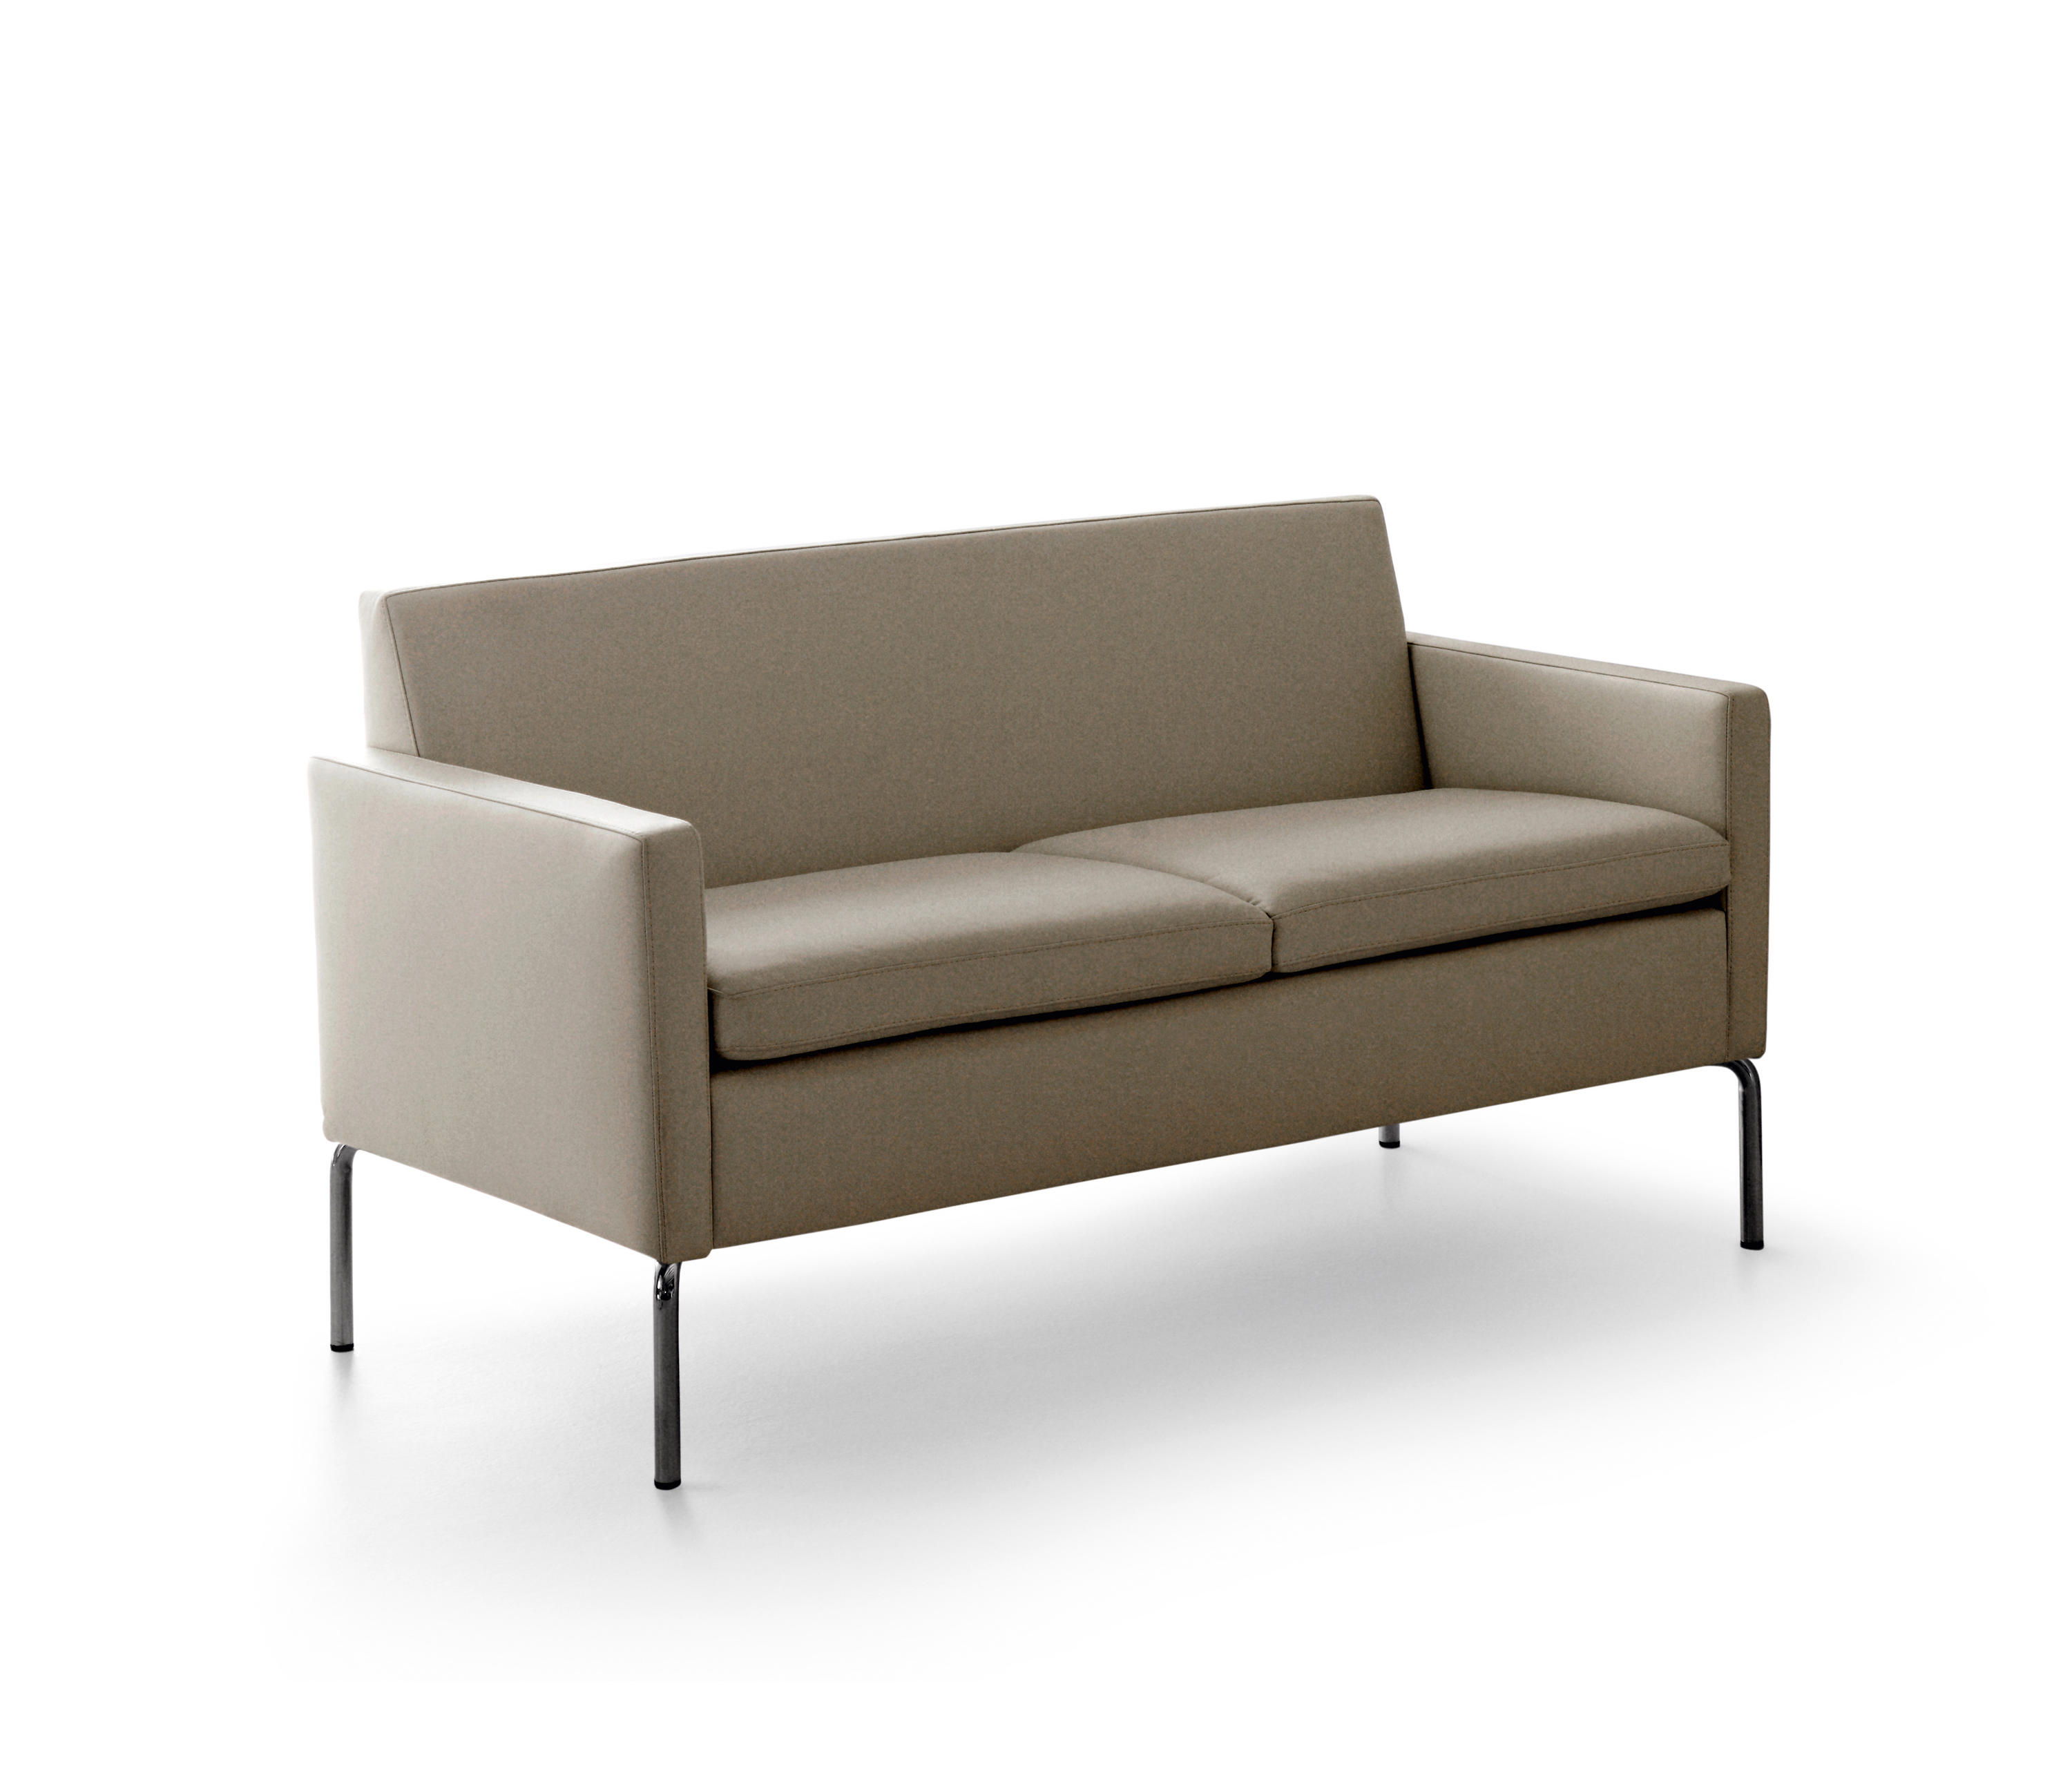 SOCRATE Lounge sofas from La Cividina